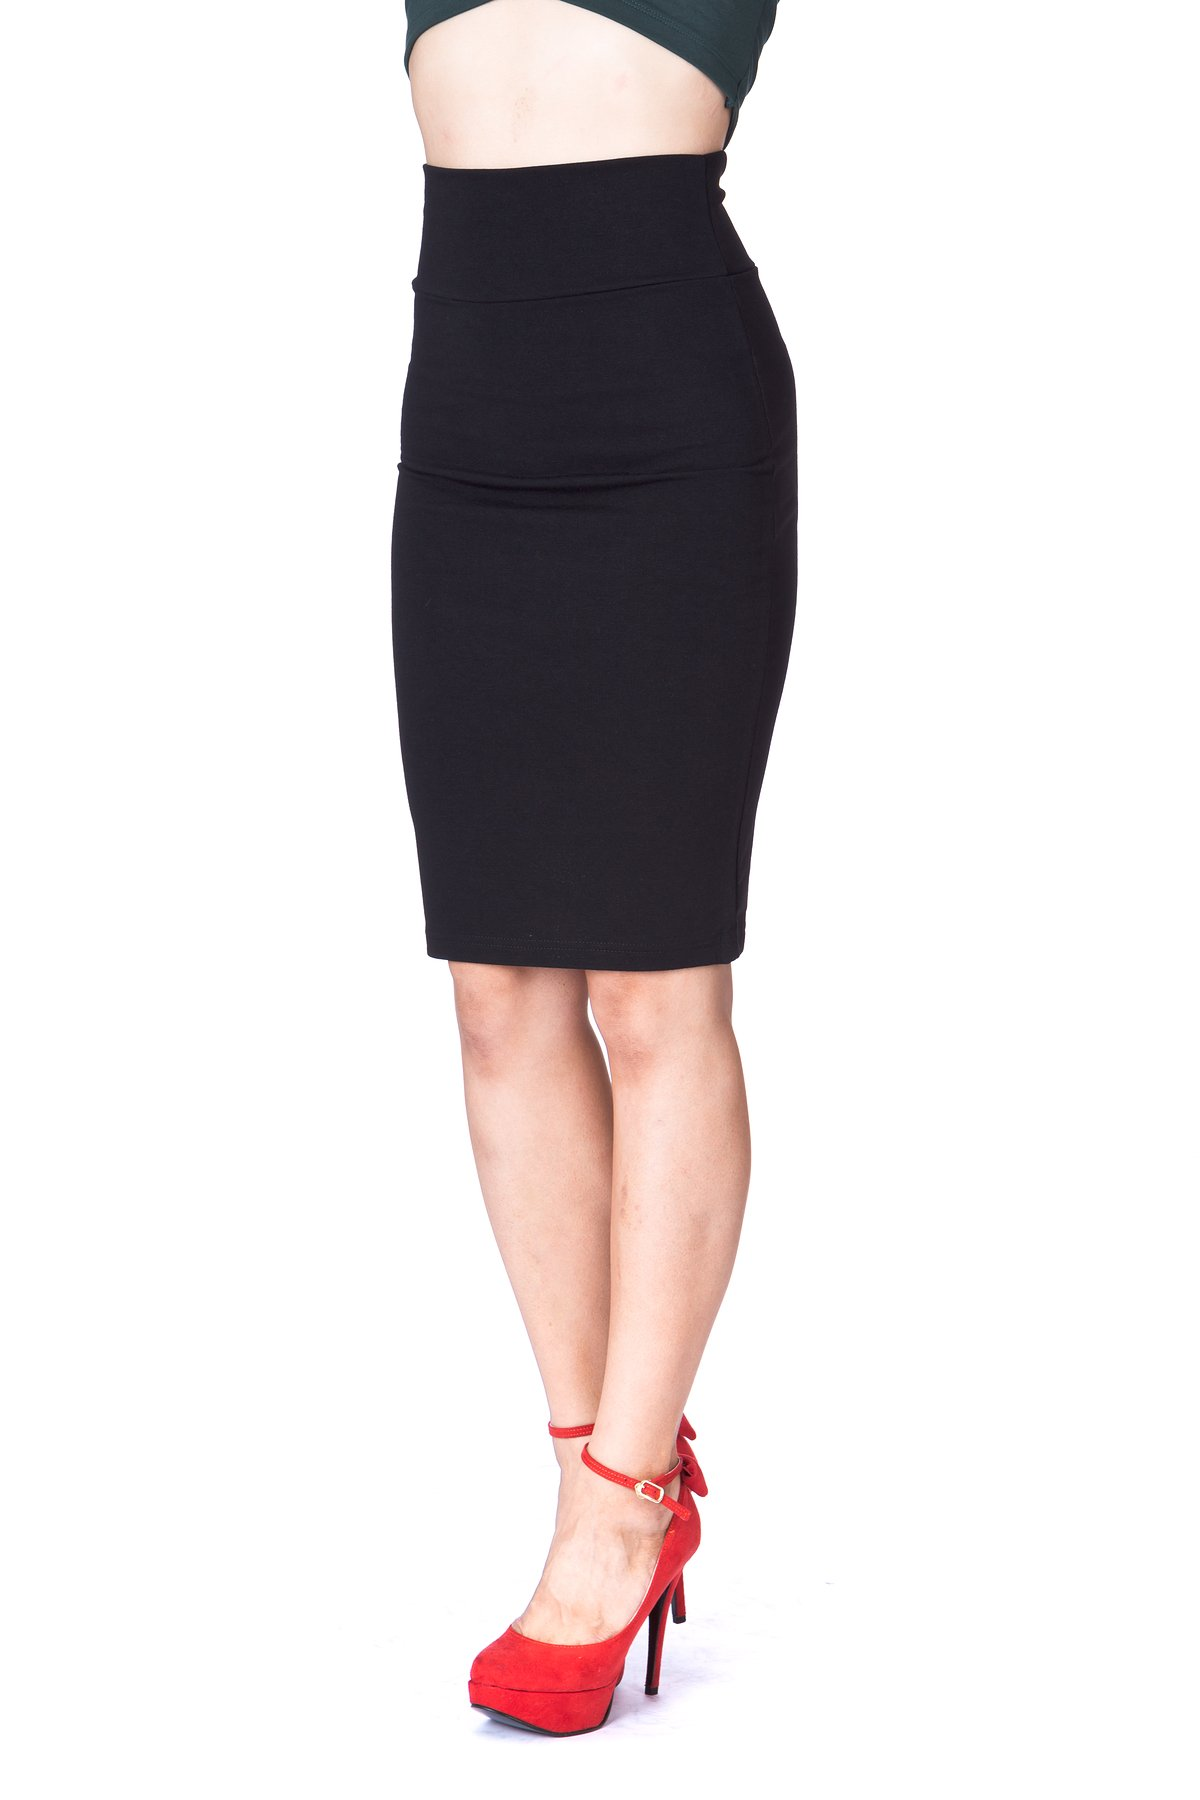 Every Occasion Stretch Pull on Wide High Waist Bodycon Pencil Knee Length Midi Skirt Black 5